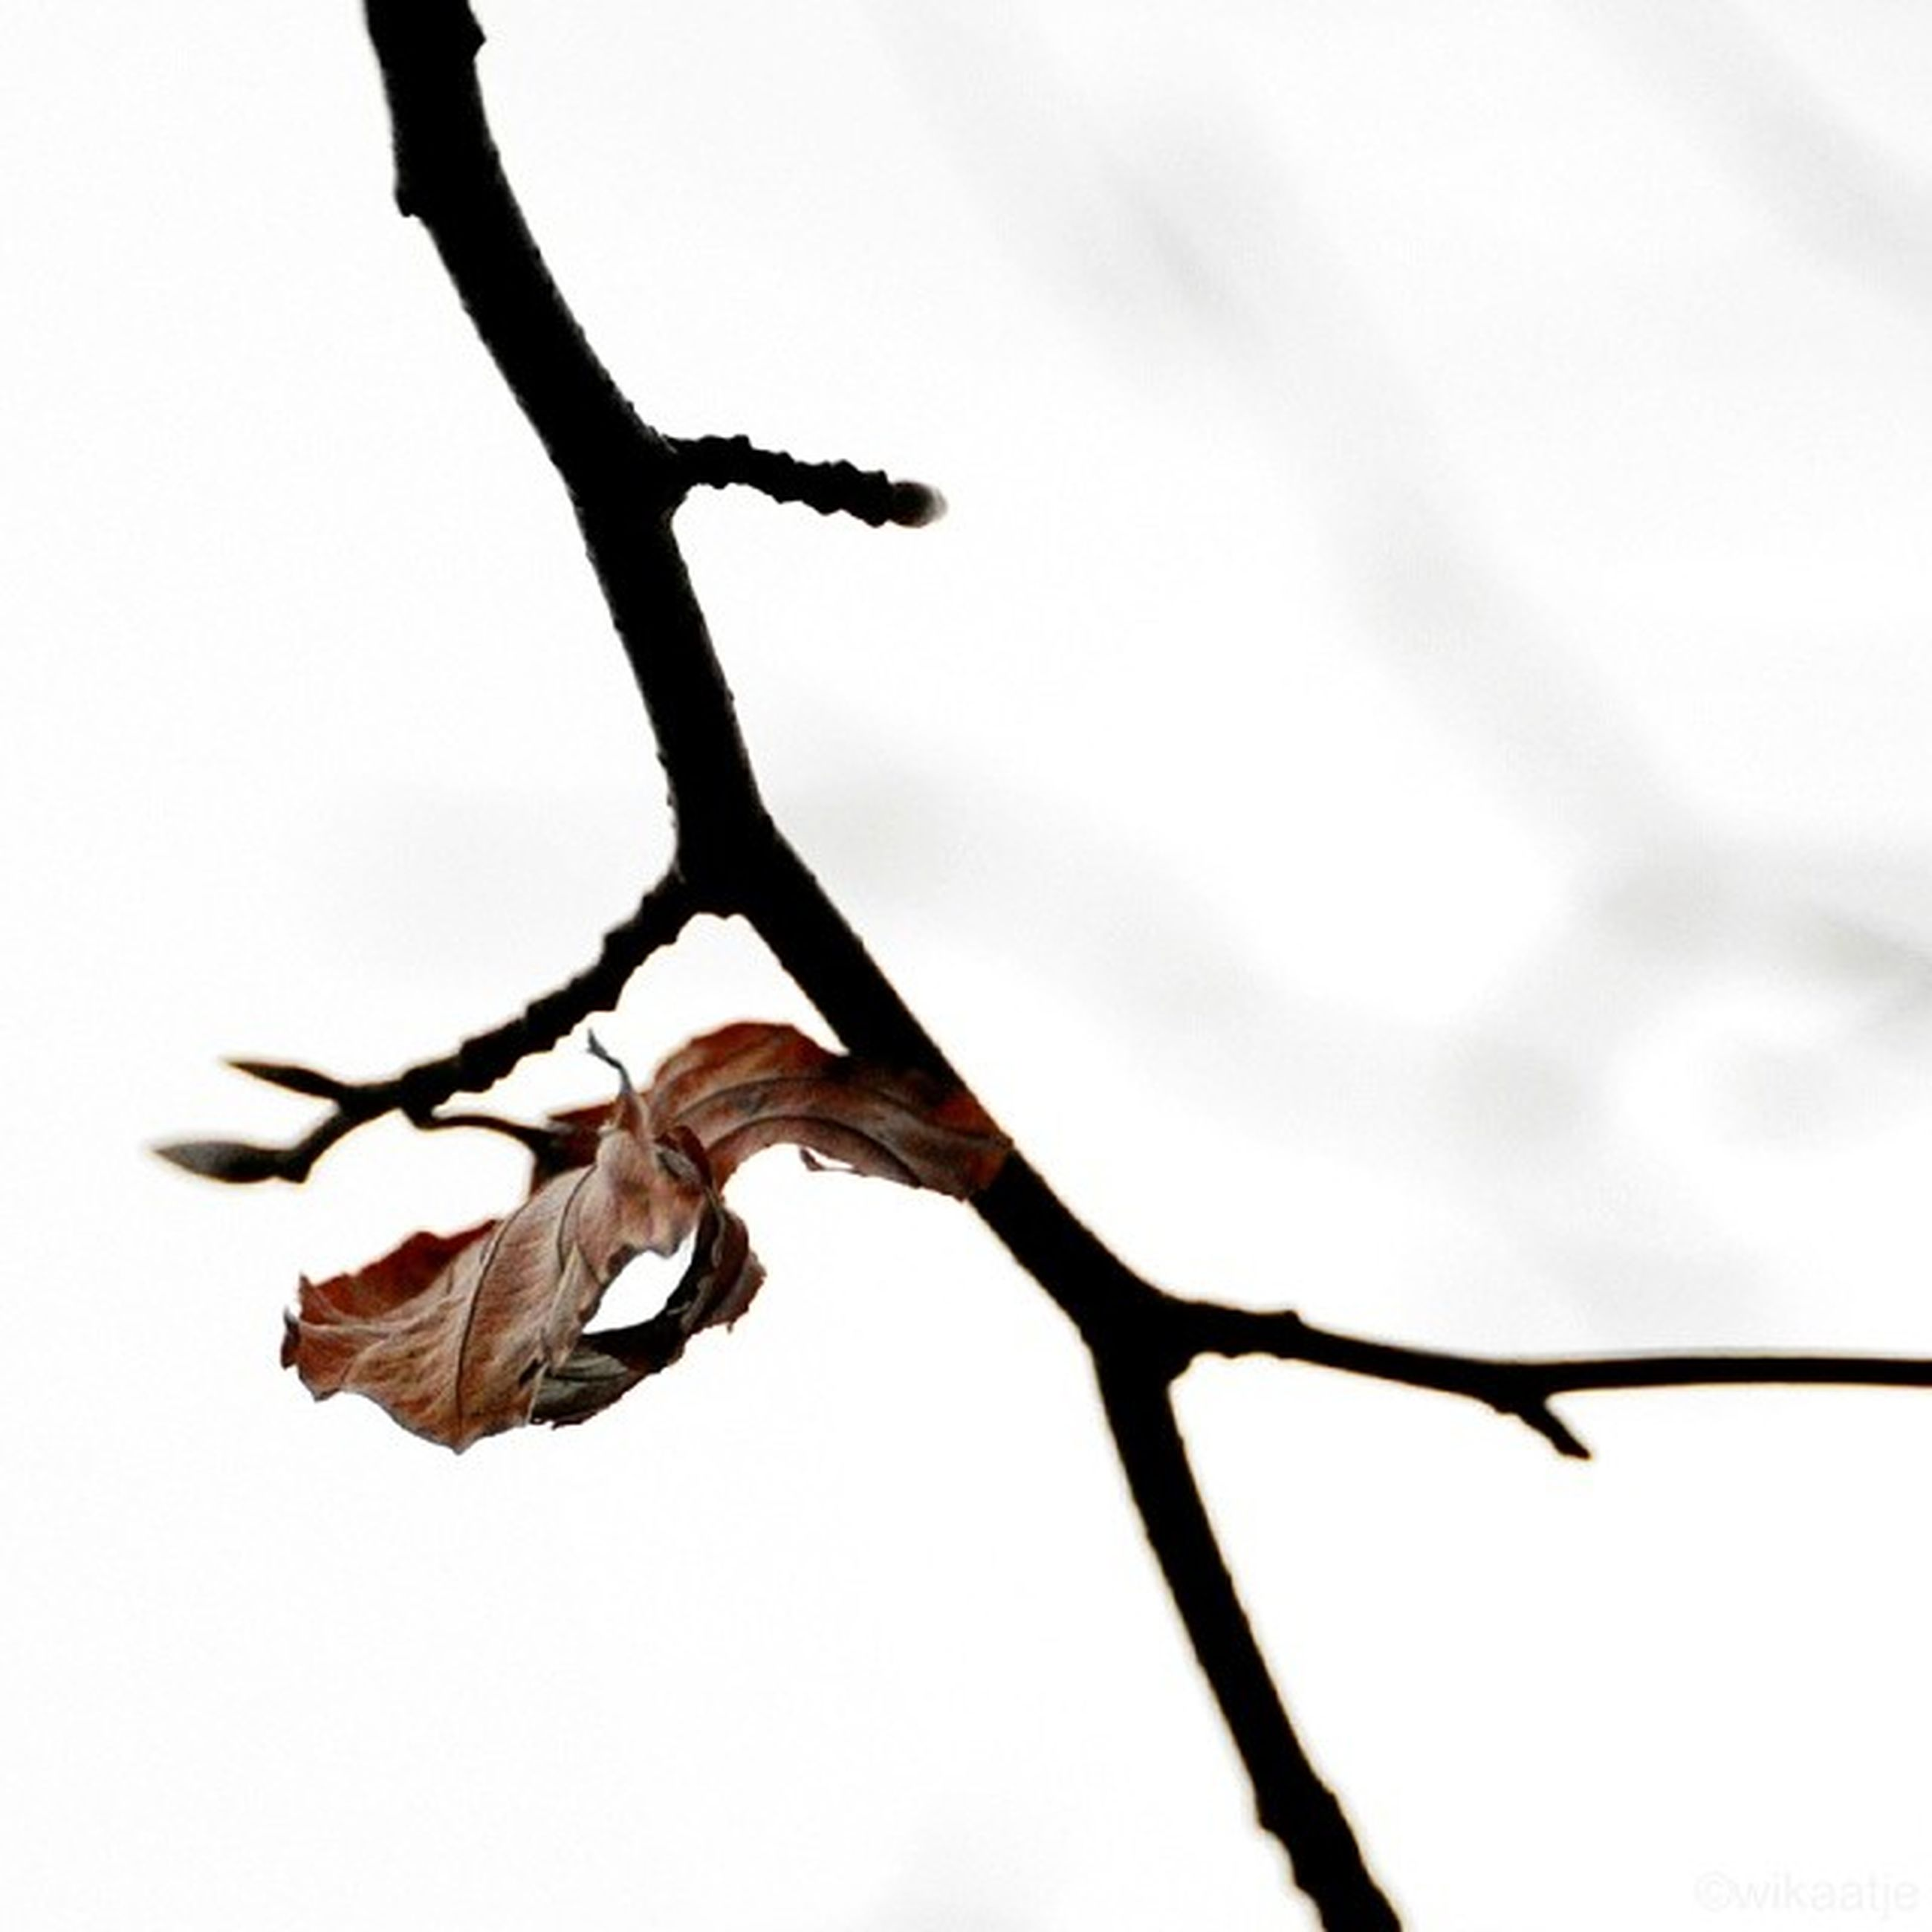 branch, close-up, nature, dry, twig, dead plant, focus on foreground, leaf, tree, clear sky, sky, low angle view, bare tree, stem, no people, outdoors, tranquility, growth, dried plant, day